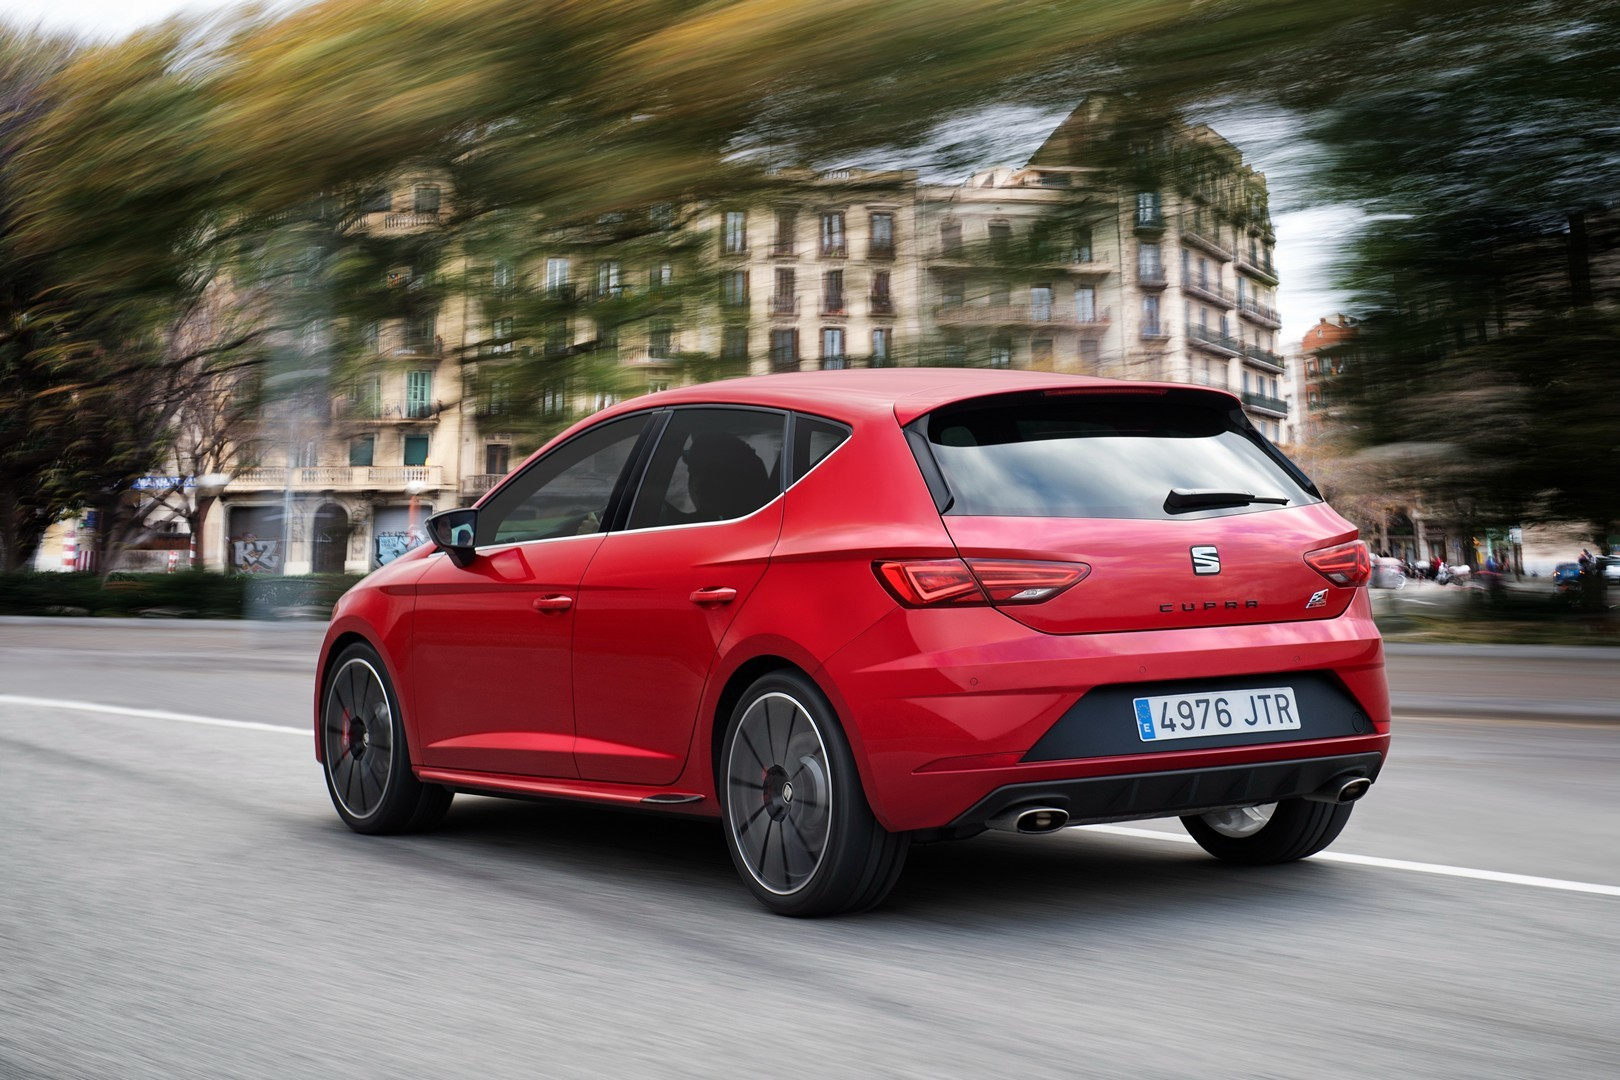 all new seat leon coming by 2020 electric cupra model under development autoevolution. Black Bedroom Furniture Sets. Home Design Ideas